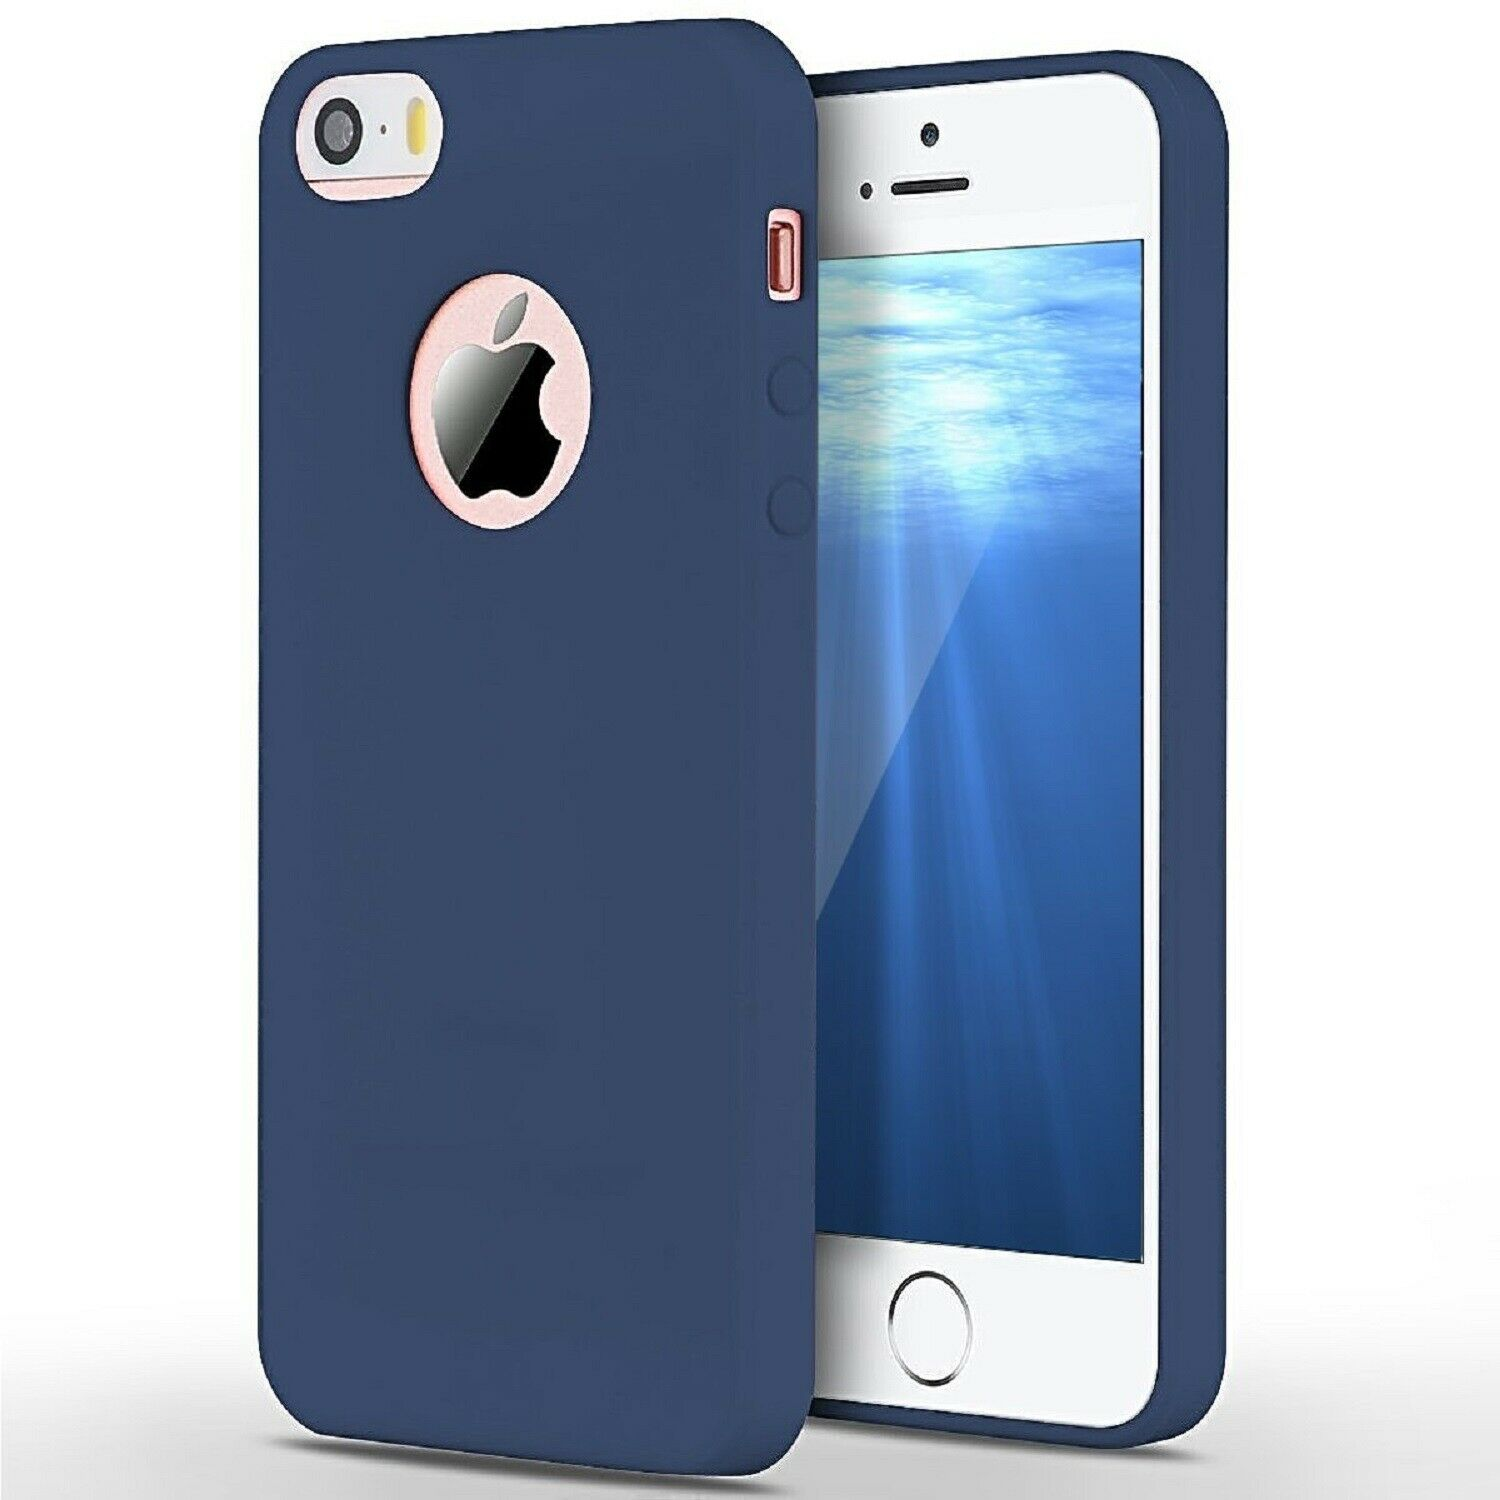 Funda Carcasa Case Iphone Silicona Flexible Ultra Fina Tpu Suave Compatible con iphone X Azul Oscuro Agujero